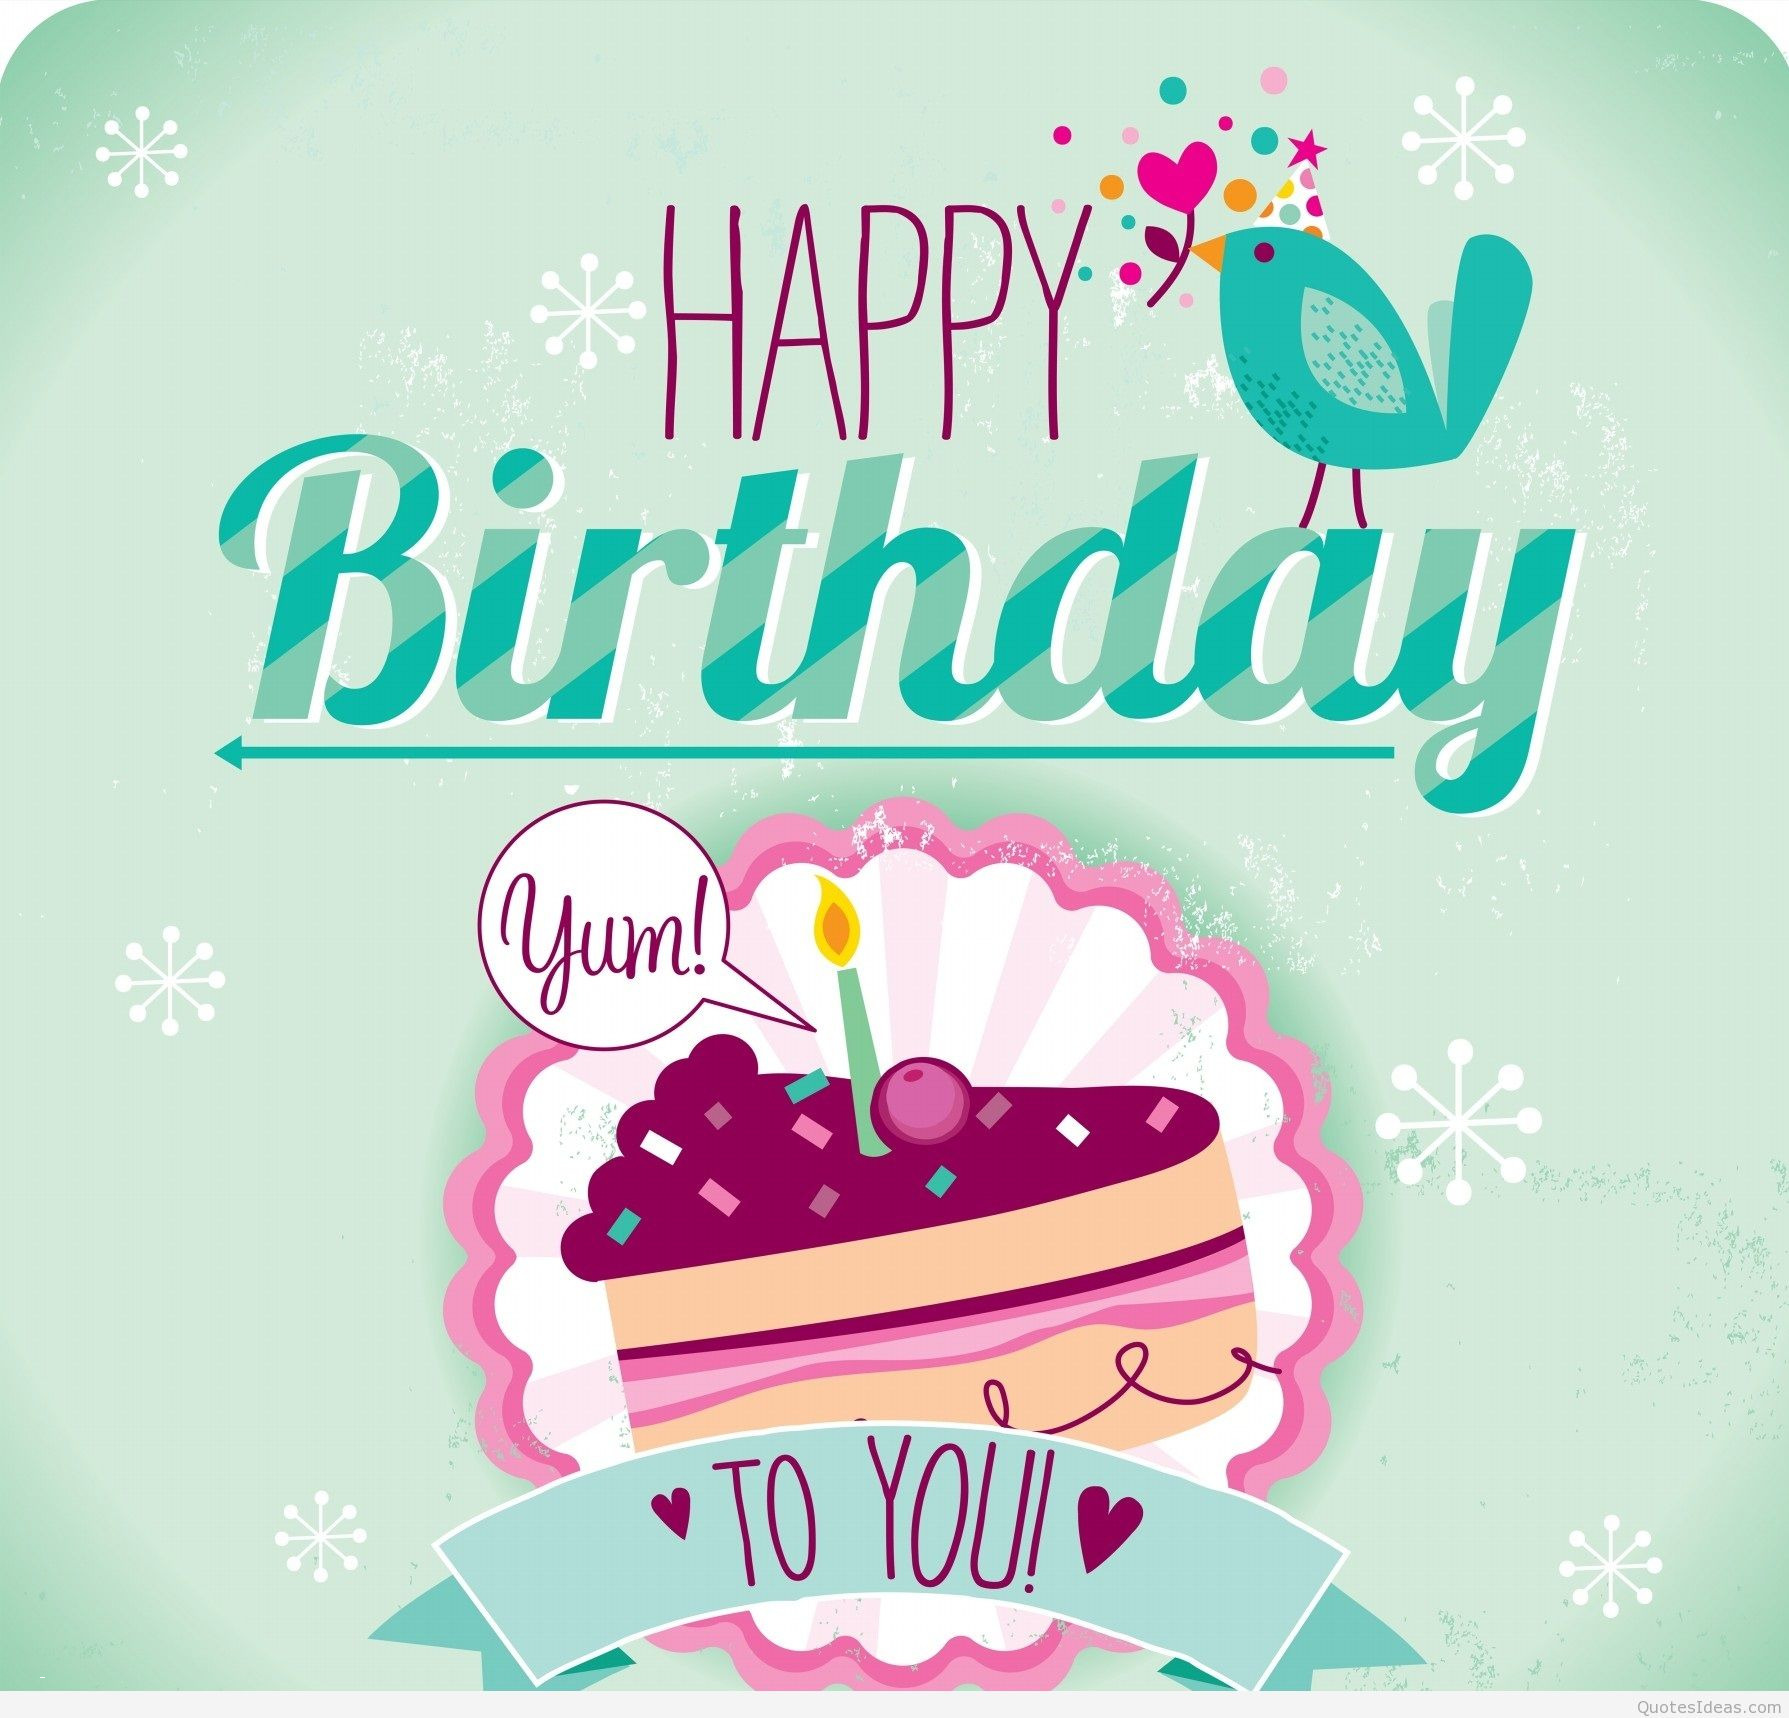 Birthday Greeting Cards Best Of Happy Birthday Cards and Greetings ...